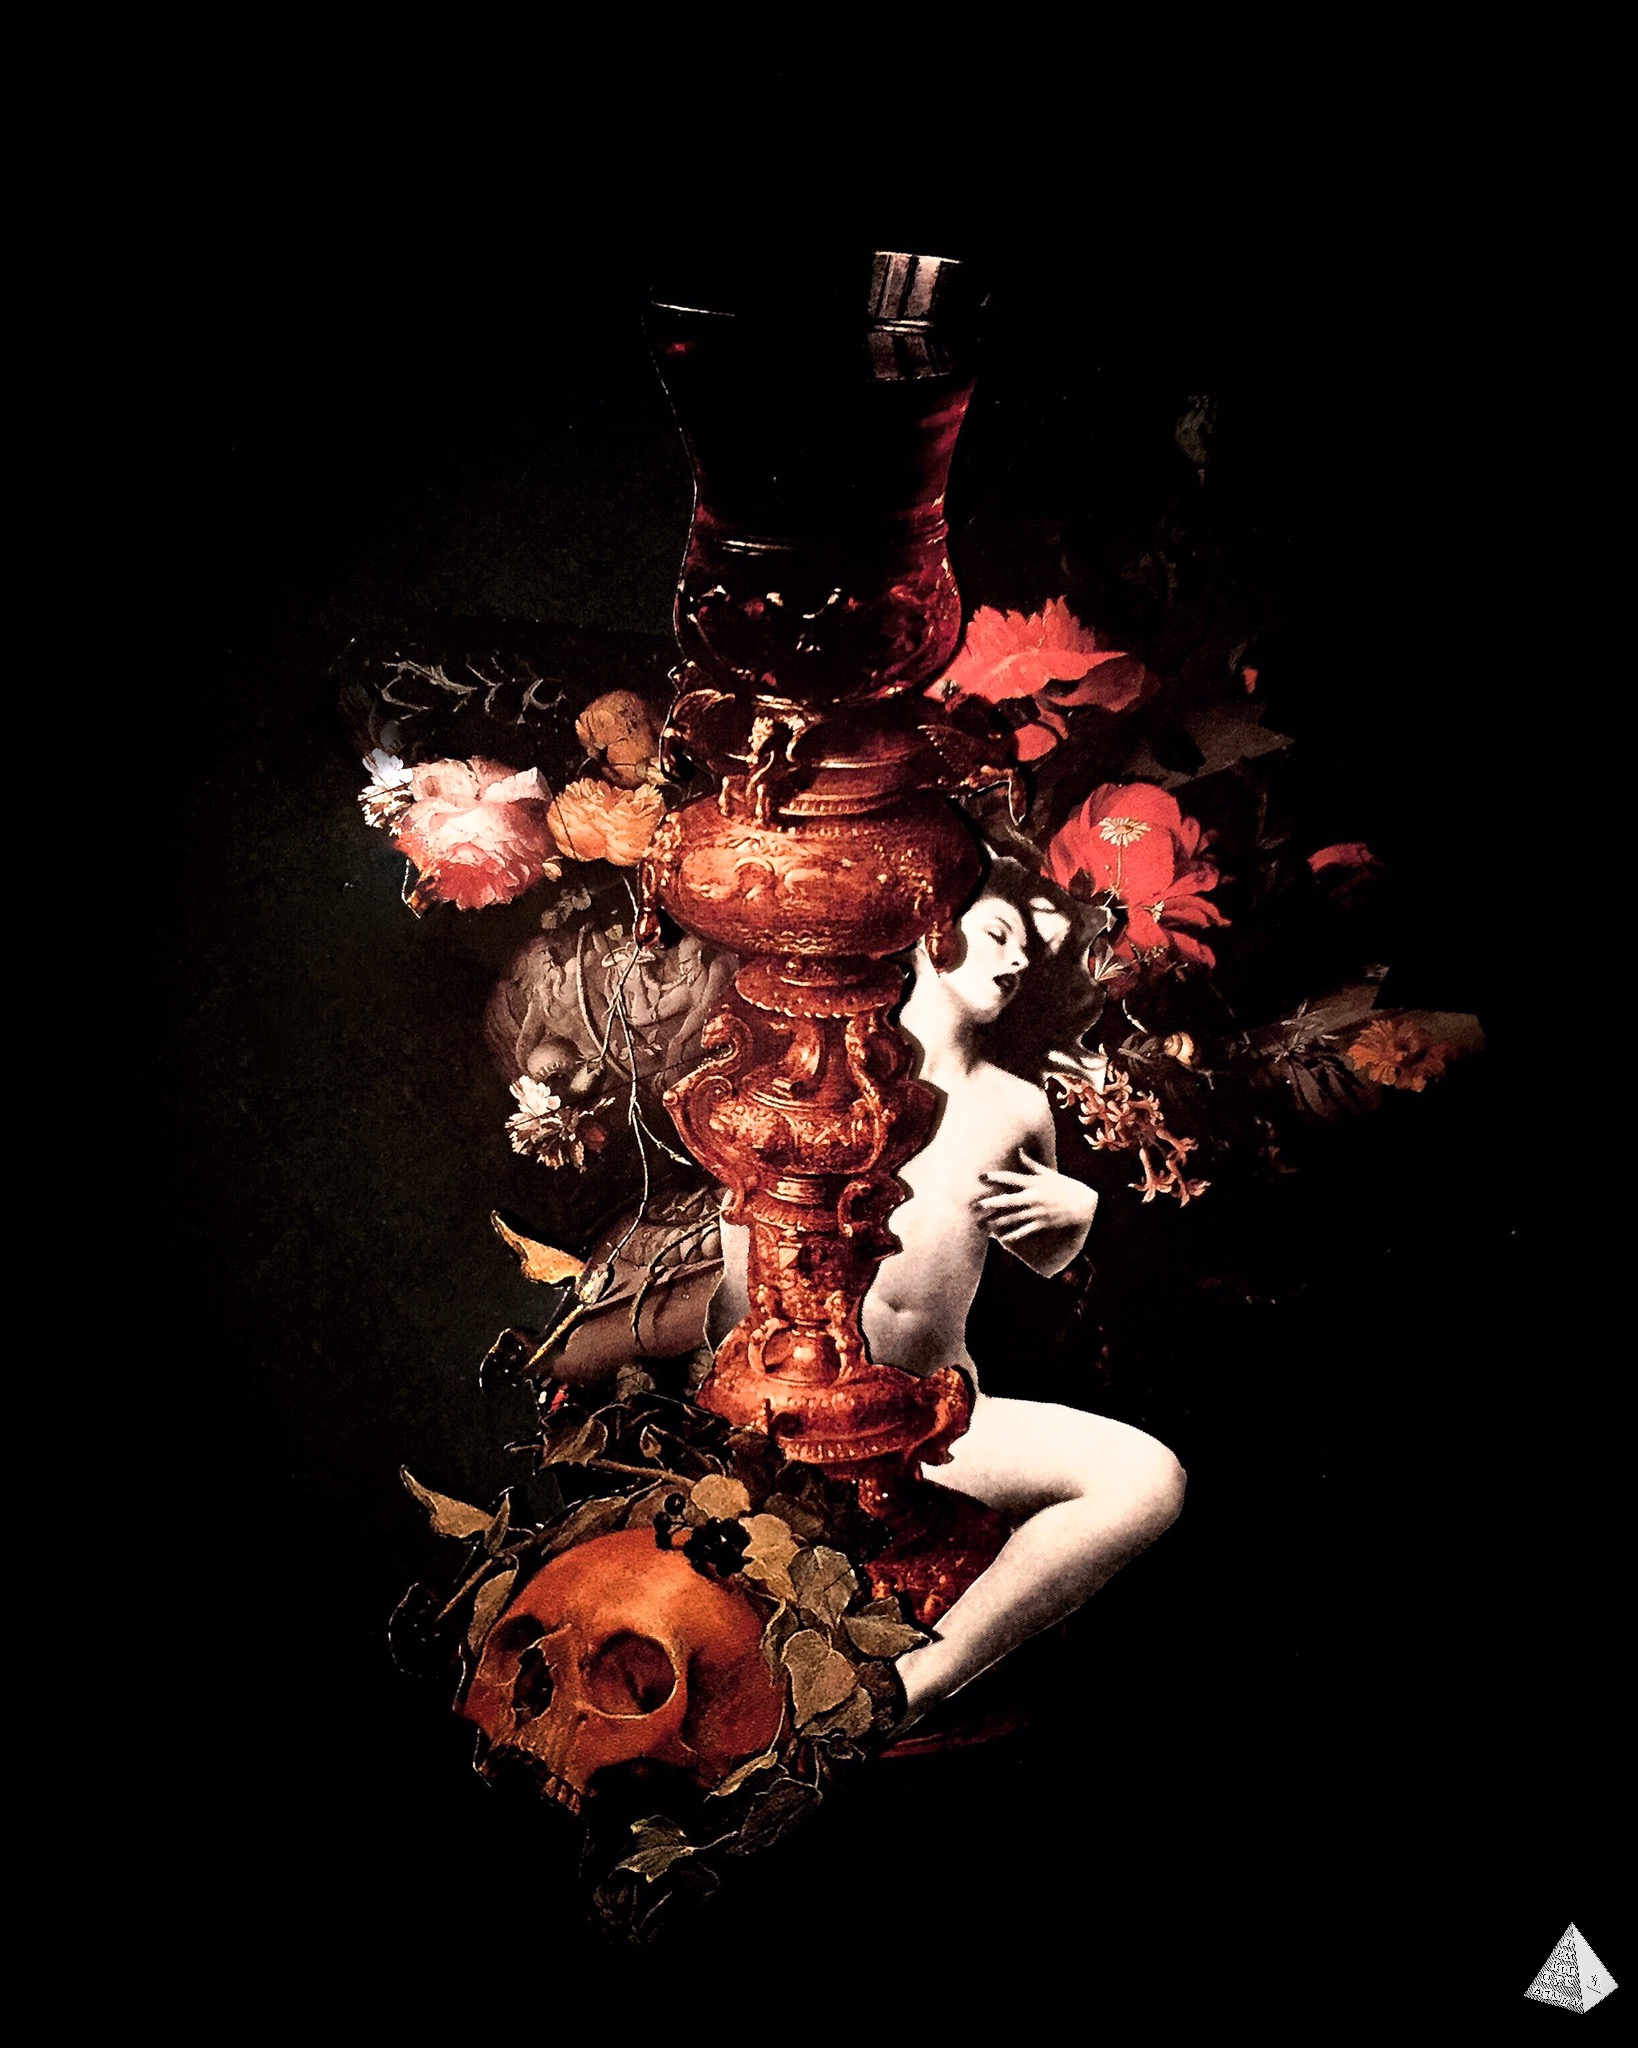 Les Fleurs du Mal: Le Poison by Joan Pope (Temple ov Saturn)